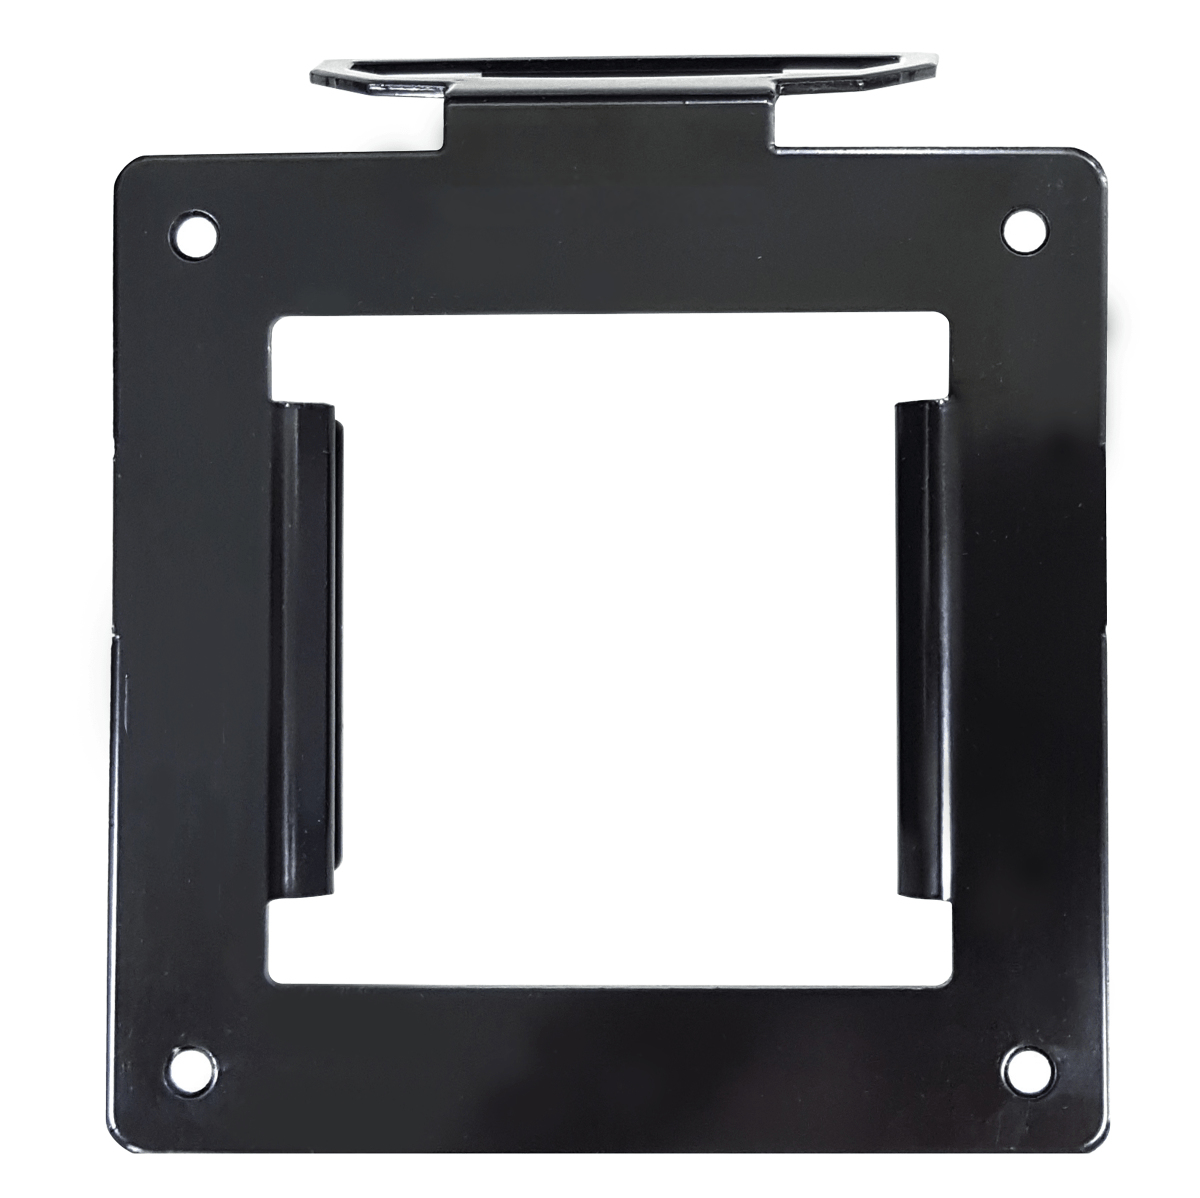 BS7B2224B/00/mounting bracket